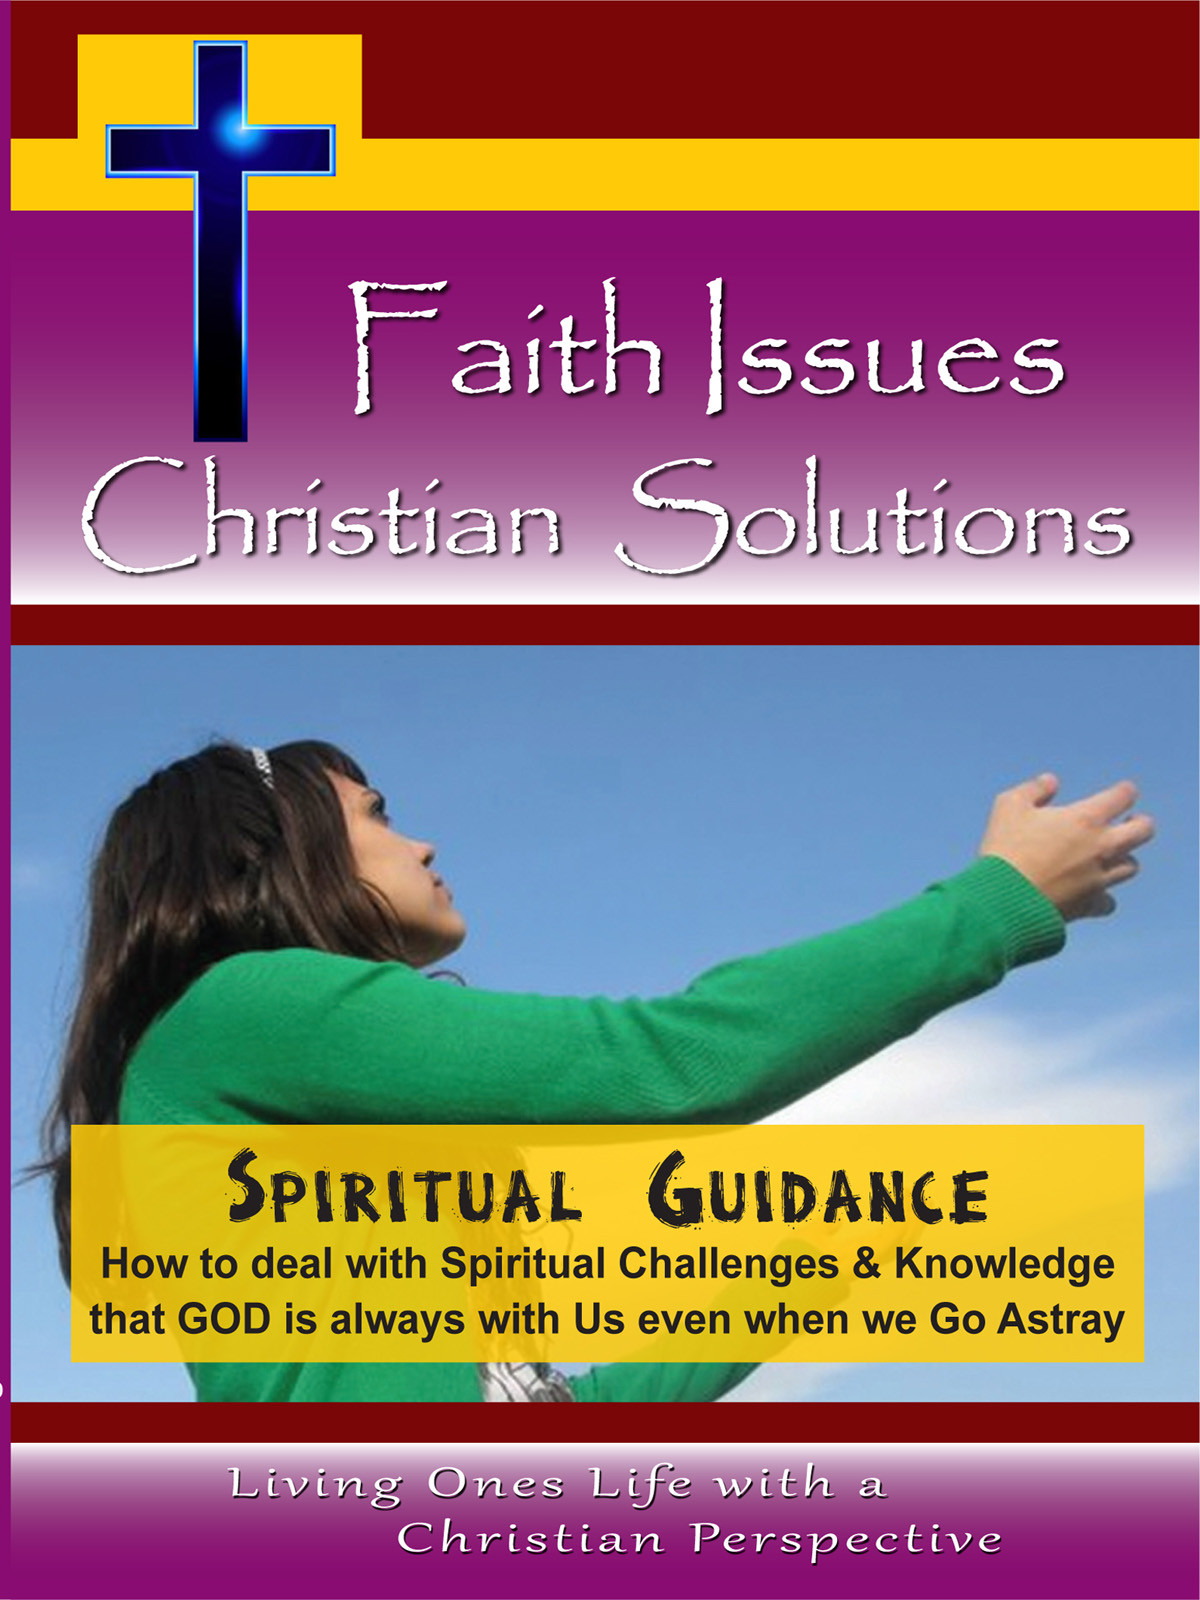 CH10049 - Spiritual Guidance How to deal with Spiritual Challenges & Knowledge that GOD is always with Us even when we Go Astray